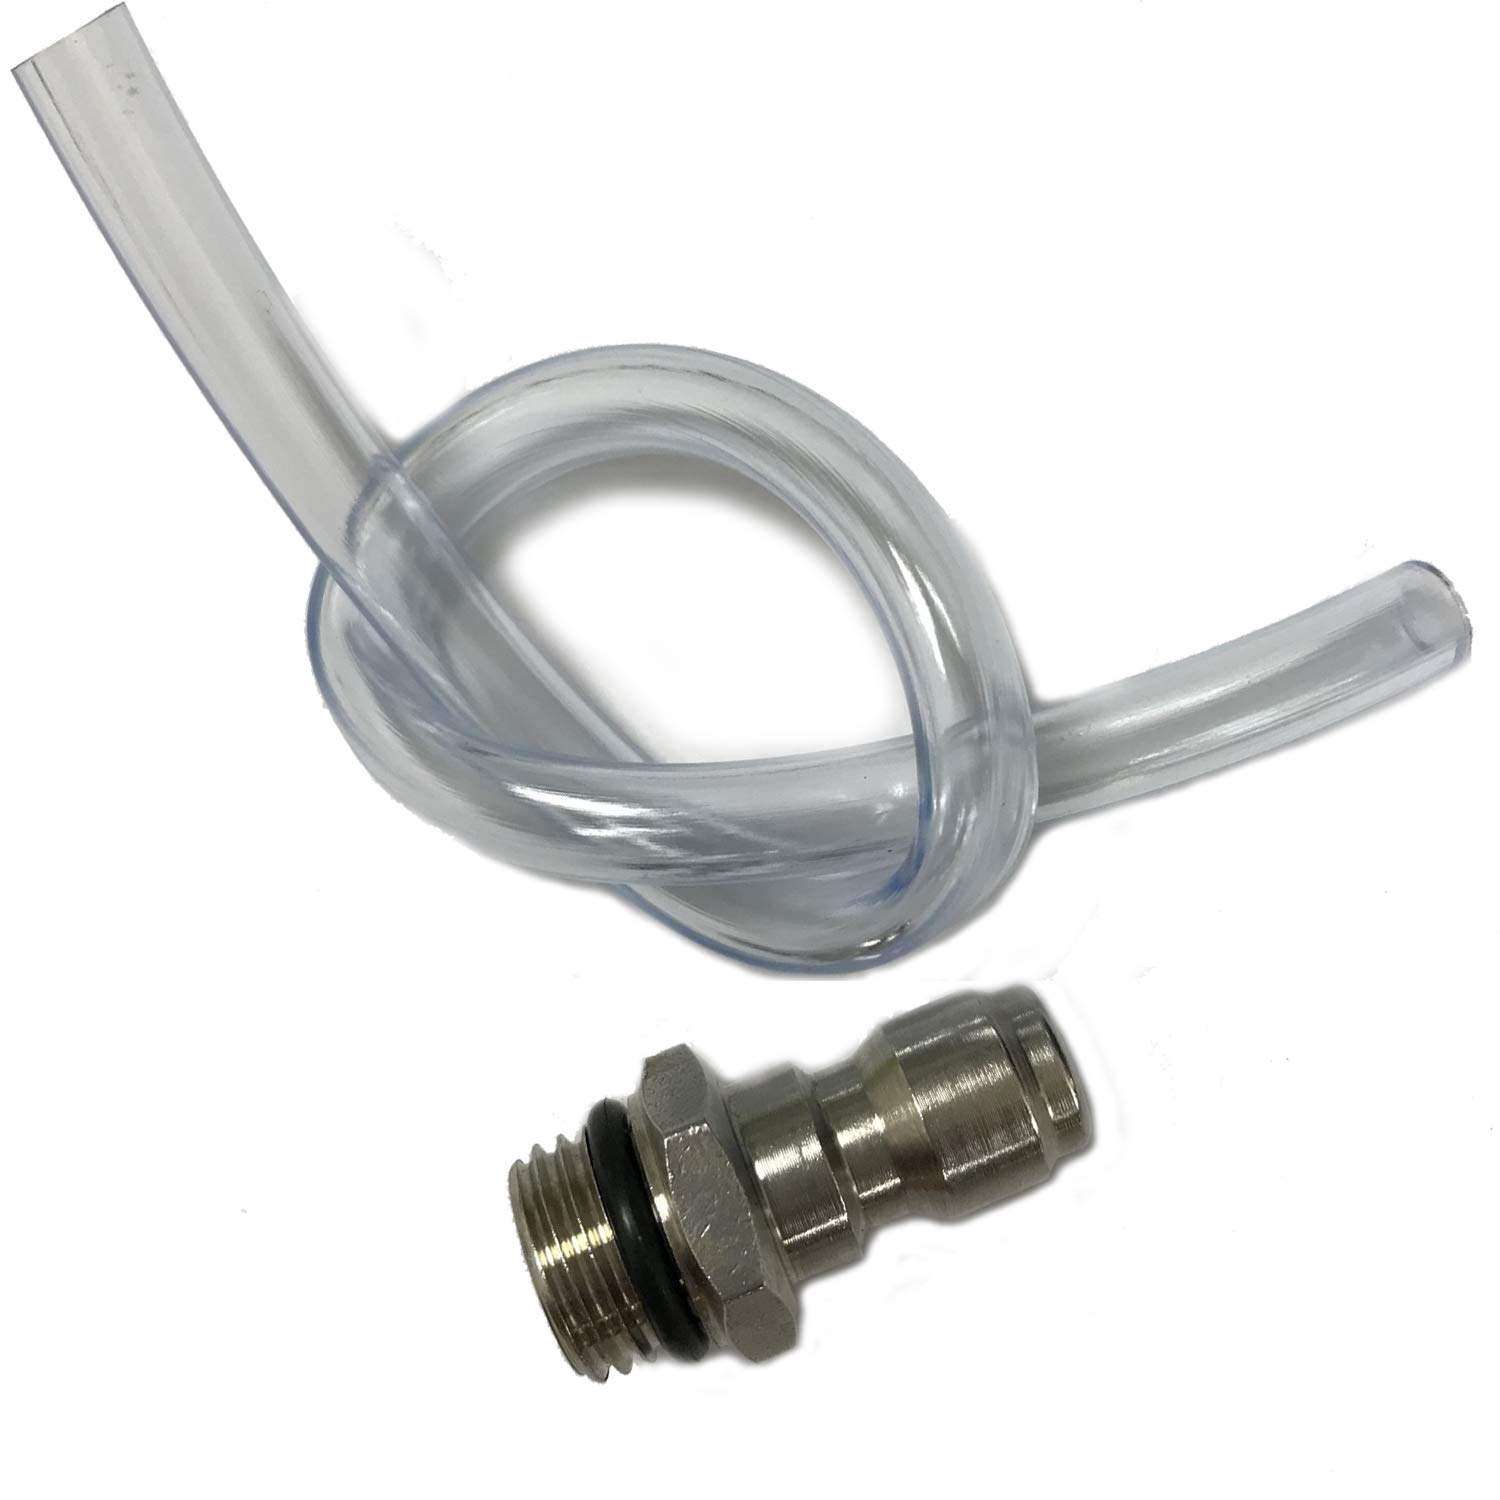 1//4 Quick Connector for Foam Cannon with 1//4 OD Tubing Foseal inc